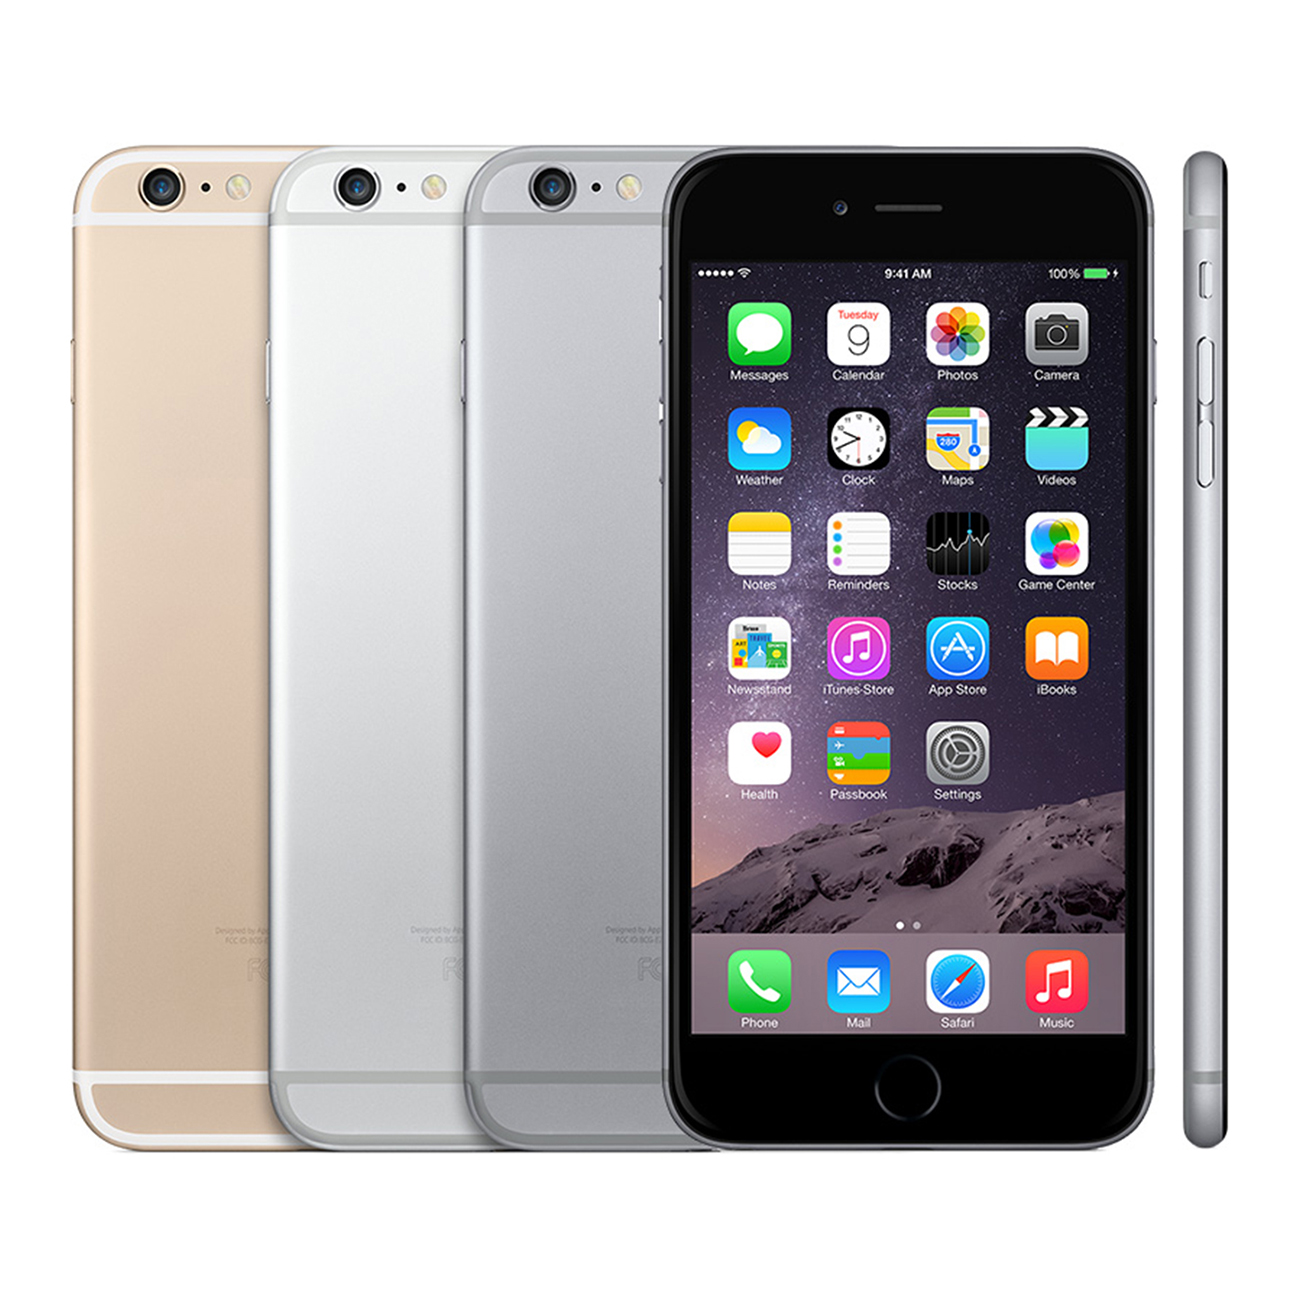 apple iphone 6s smartphone 16 64 128 gb unlocked space grey rose gold silver ebay. Black Bedroom Furniture Sets. Home Design Ideas